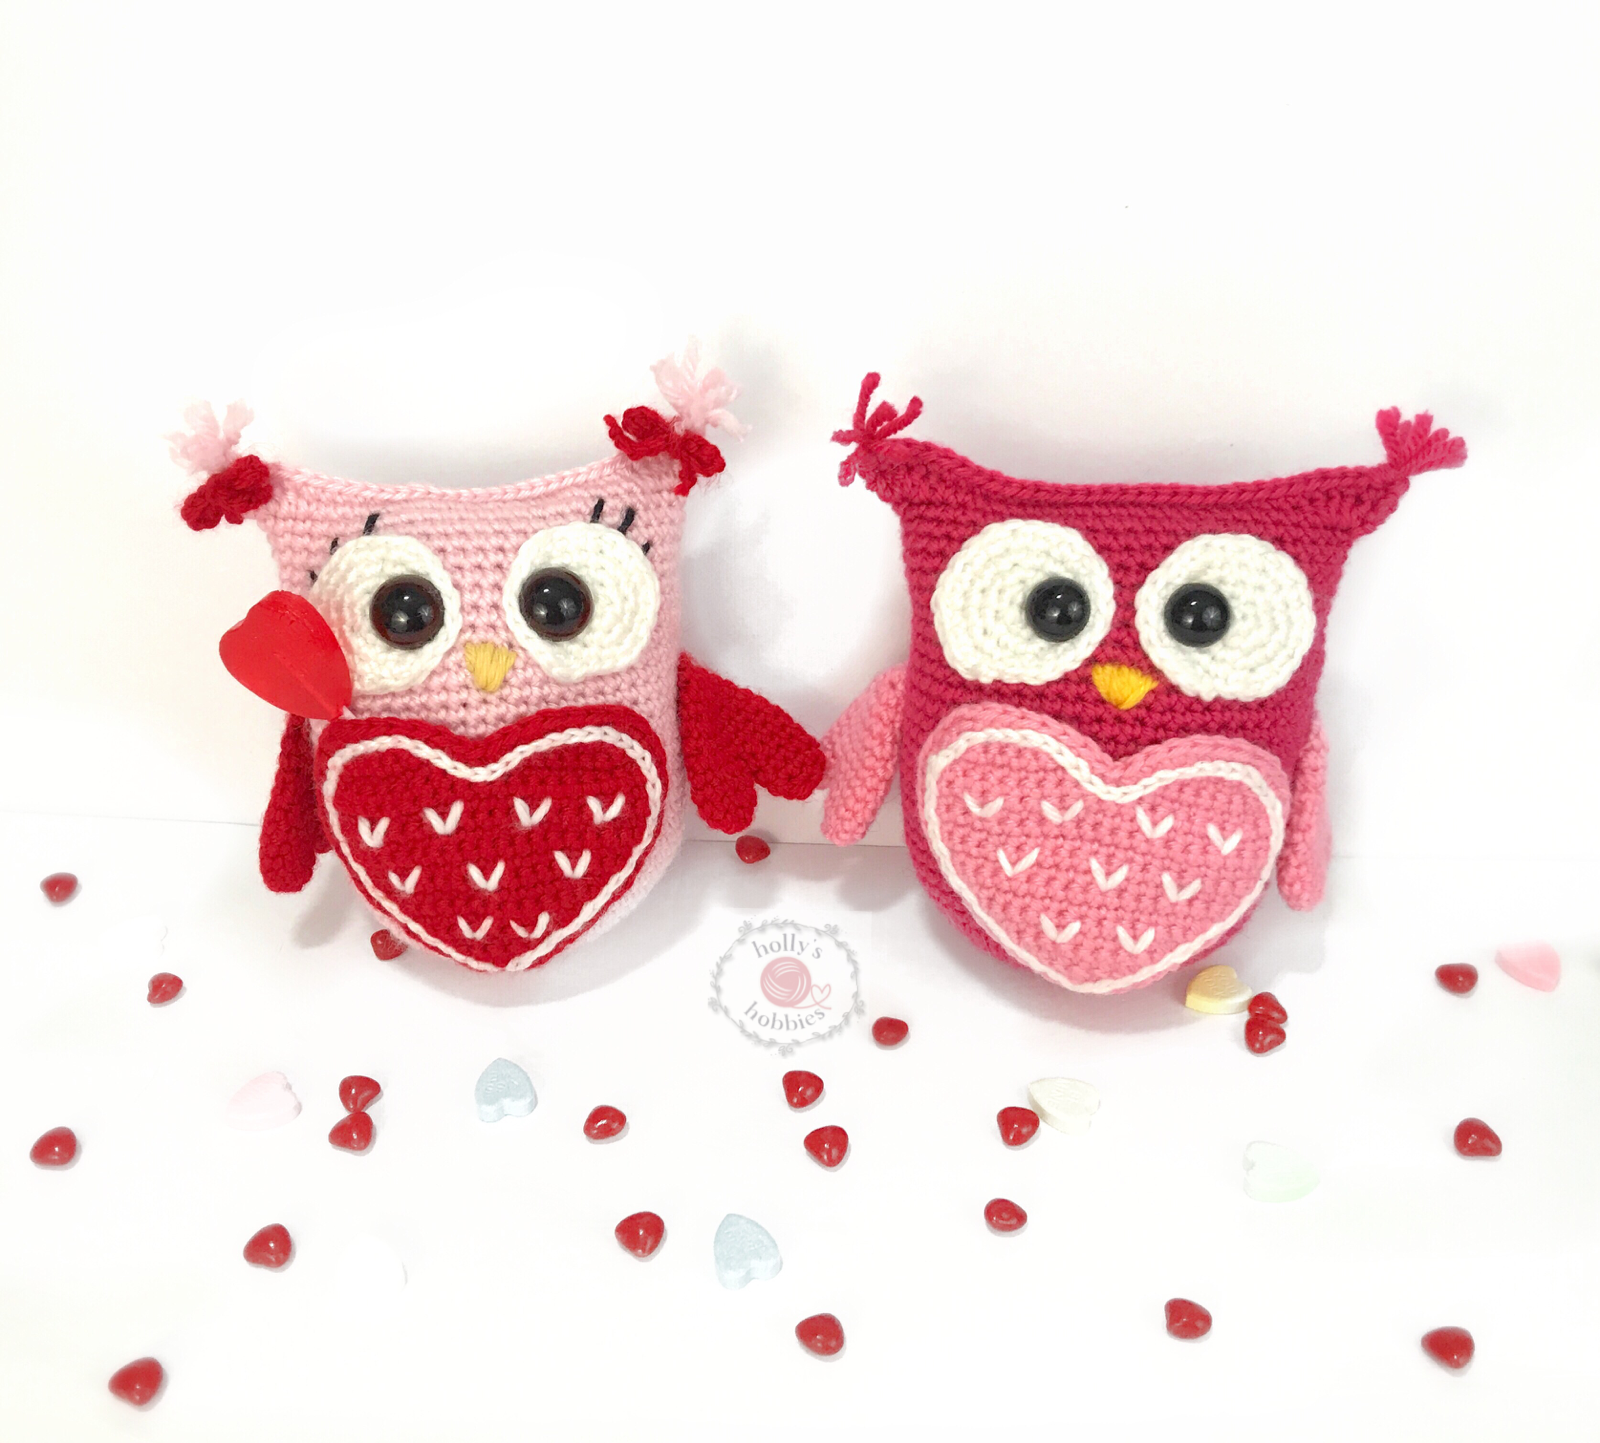 http://www.hollyshobbiescrafts.com/apps/blog/show/45228168-owl-always-love-you-valentine-caddy-pattern